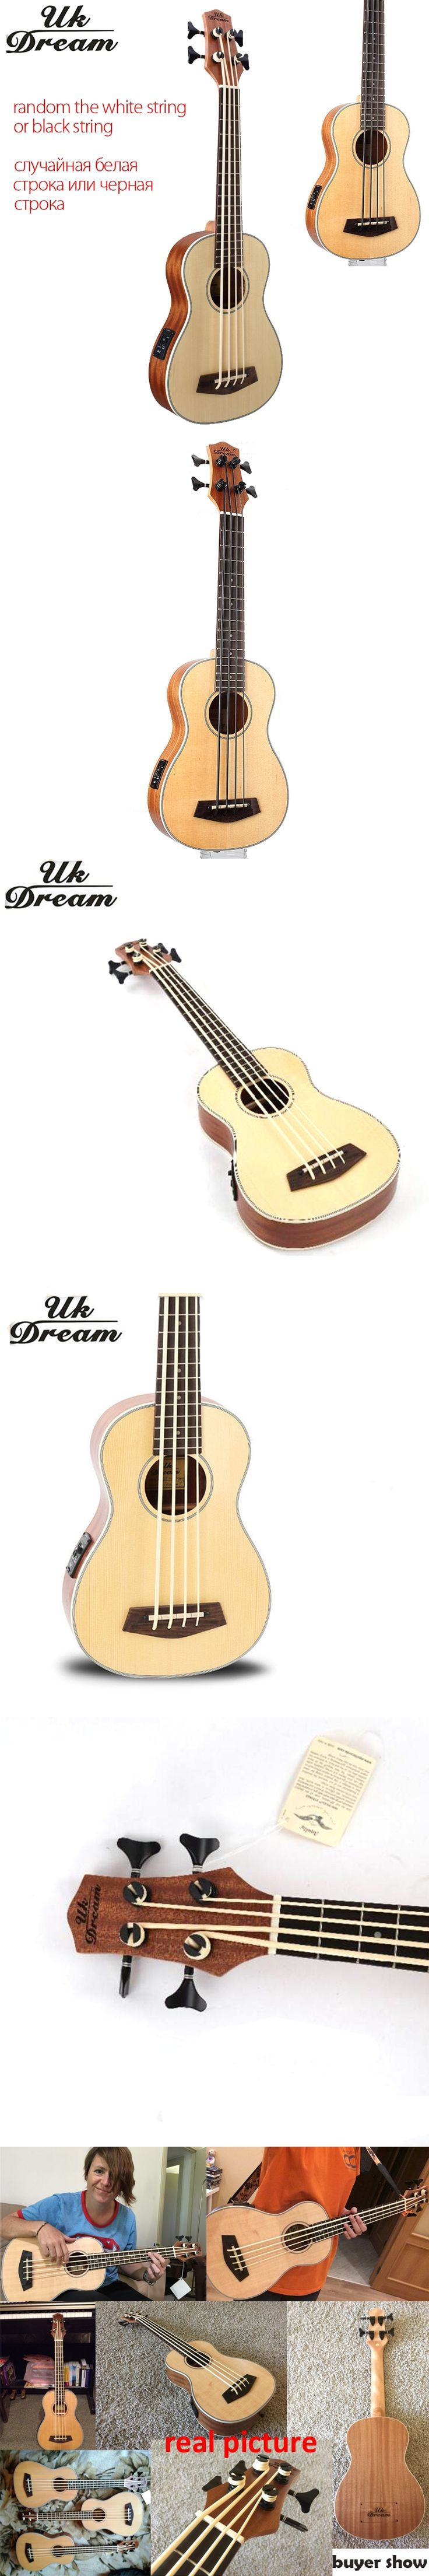 30 inch Wooden Electrica Bass Guitar 4 strings Ukulele Musical Instruments Professional Picea Asperata U Bass